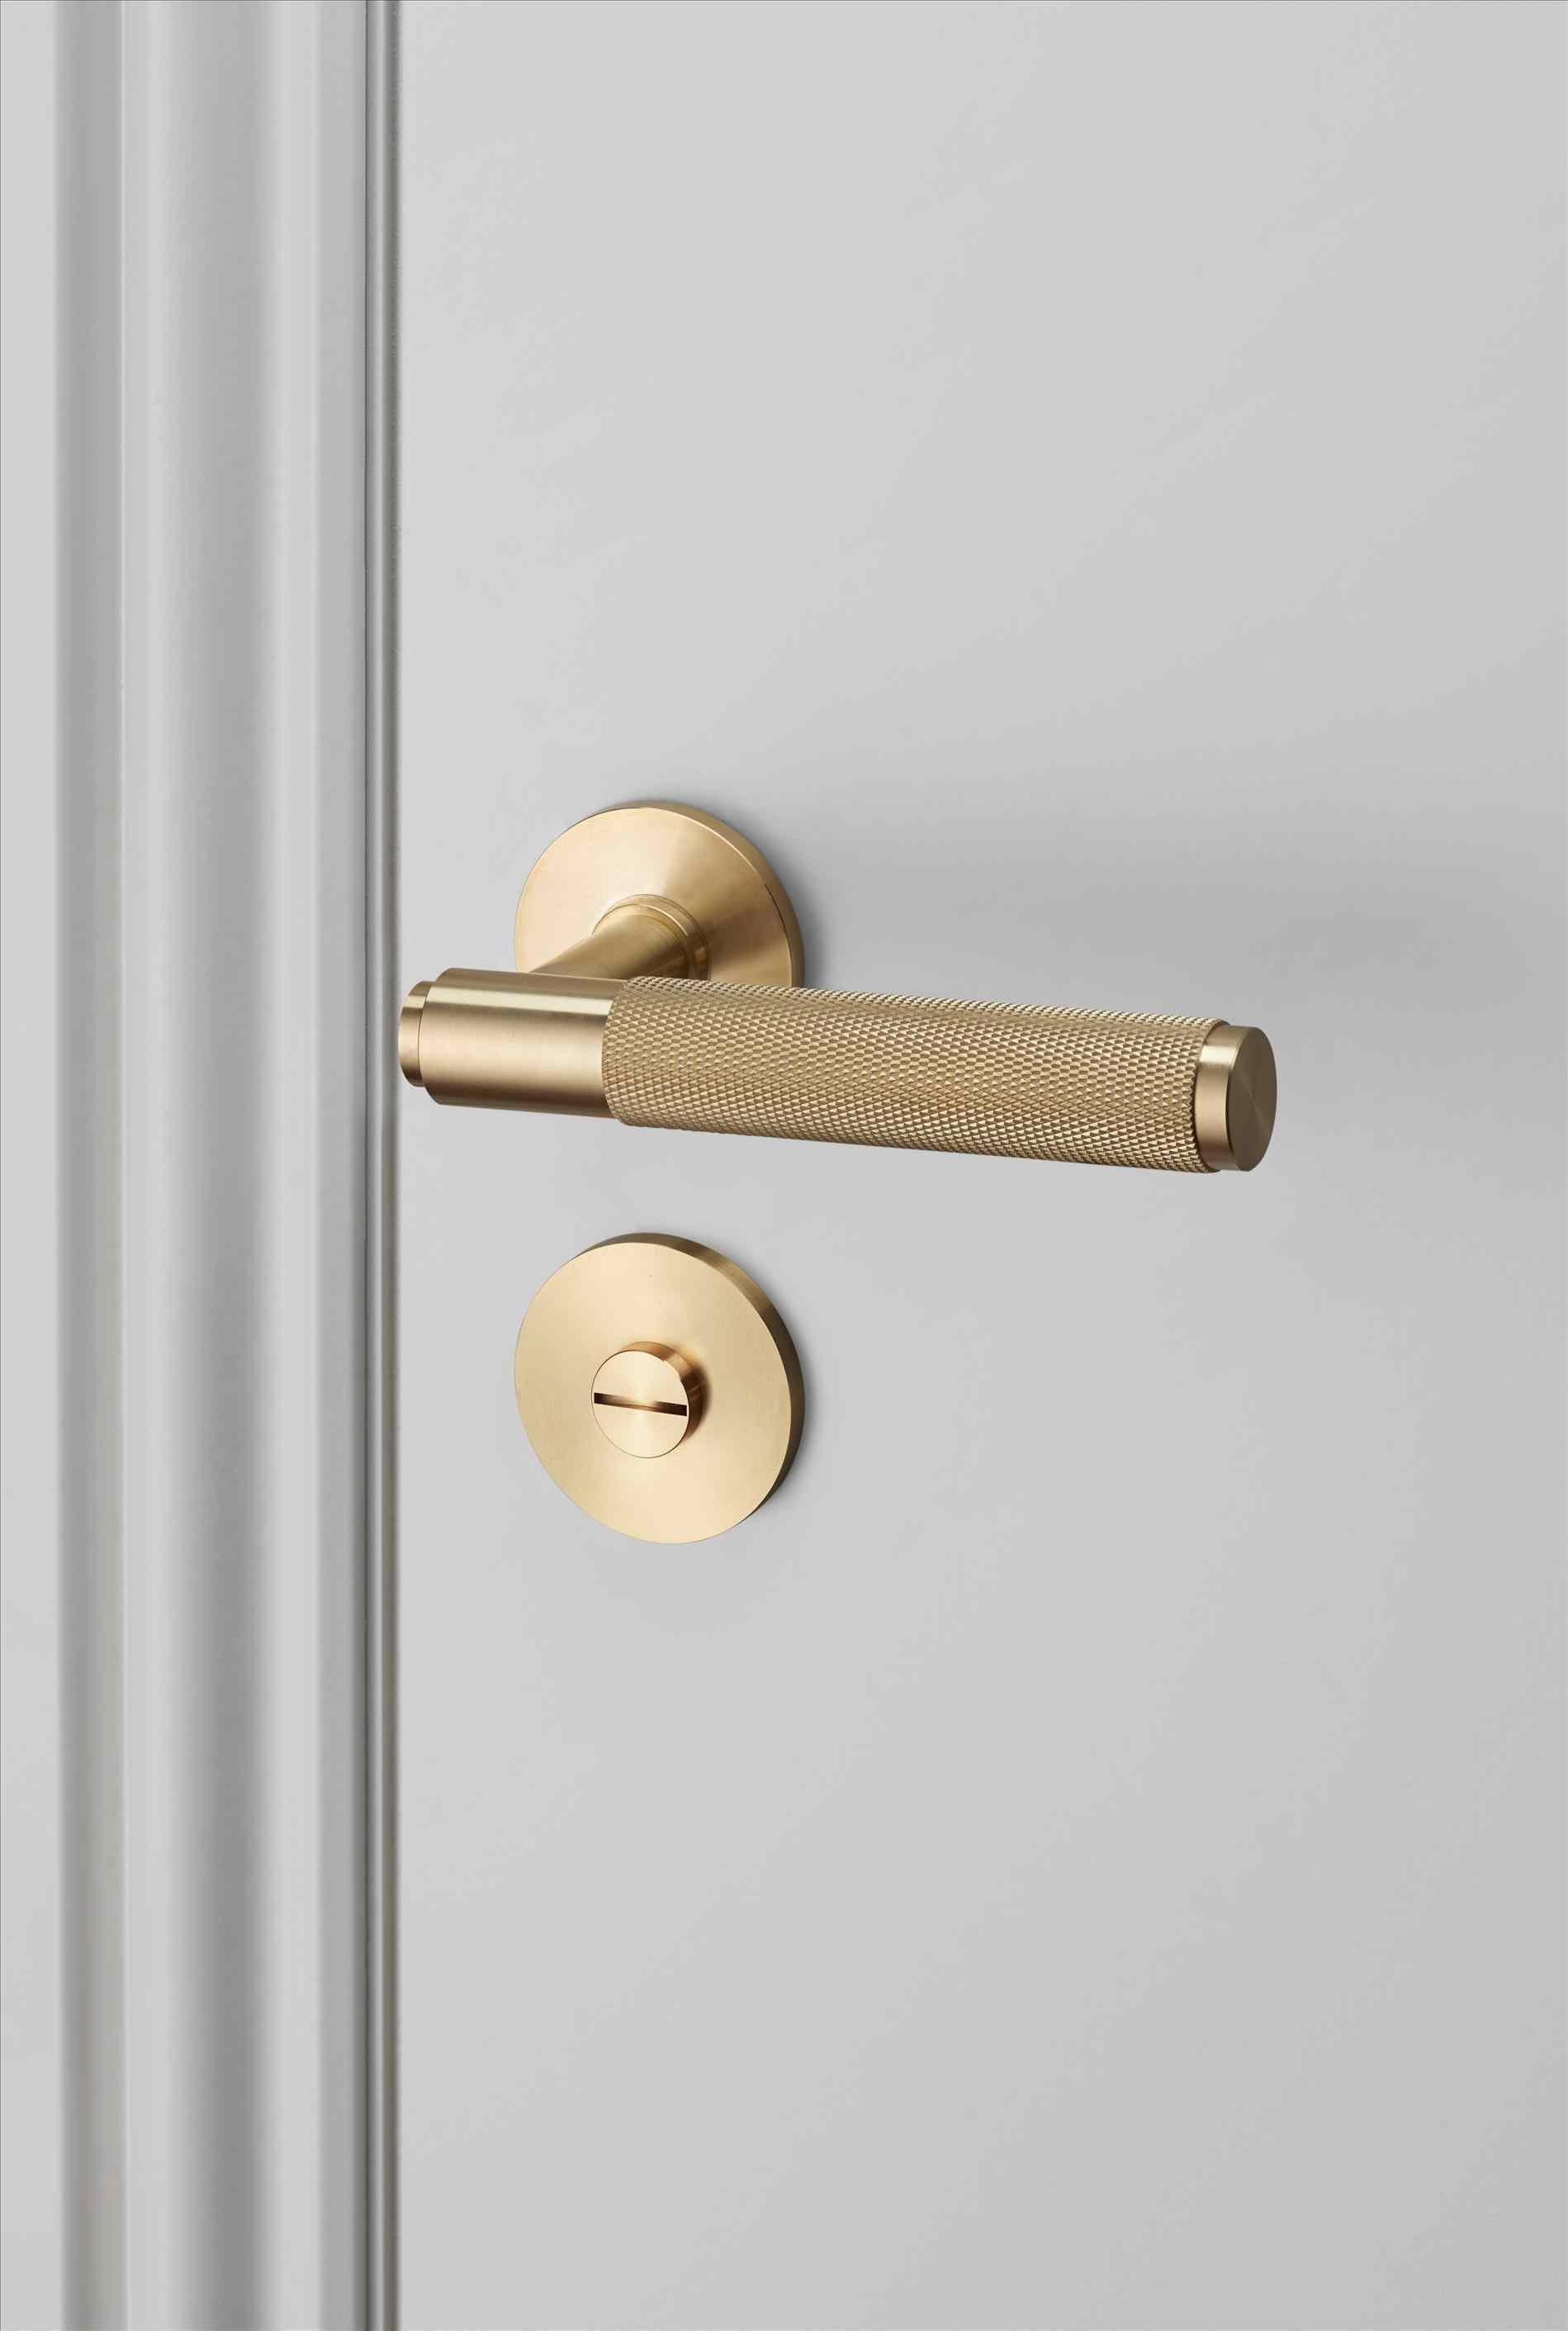 types remarkable deadbolts and door bed design entry black locks handles handlesets of glamorous bath schlage key with unique